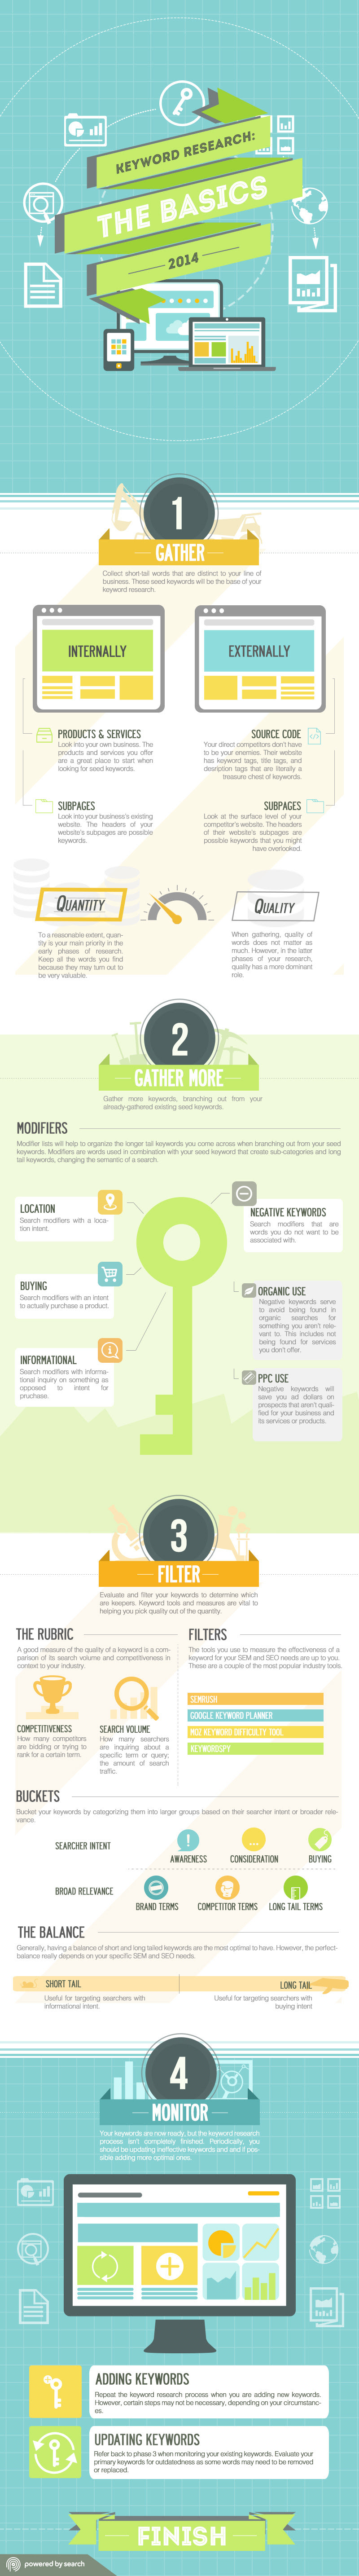 Infographic: Keyword Research: The Basics 2014 #infographic